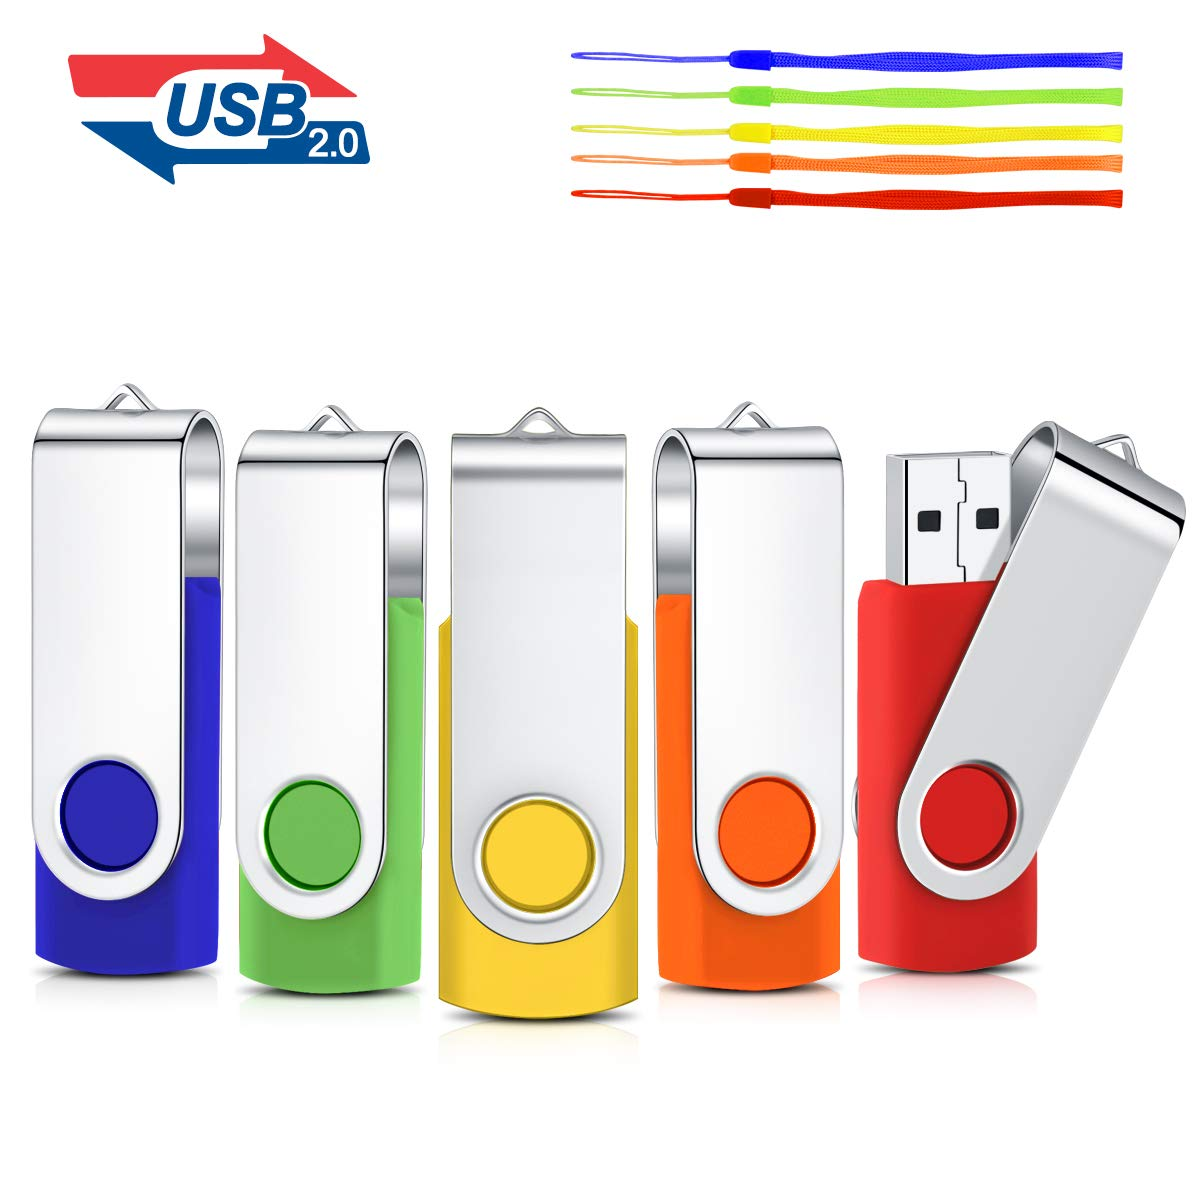 Pack de 5 memorias USB 2.0 Flash Thumb Drives multicolor Mixcolors 2 4 GB: Amazon.es: Informática